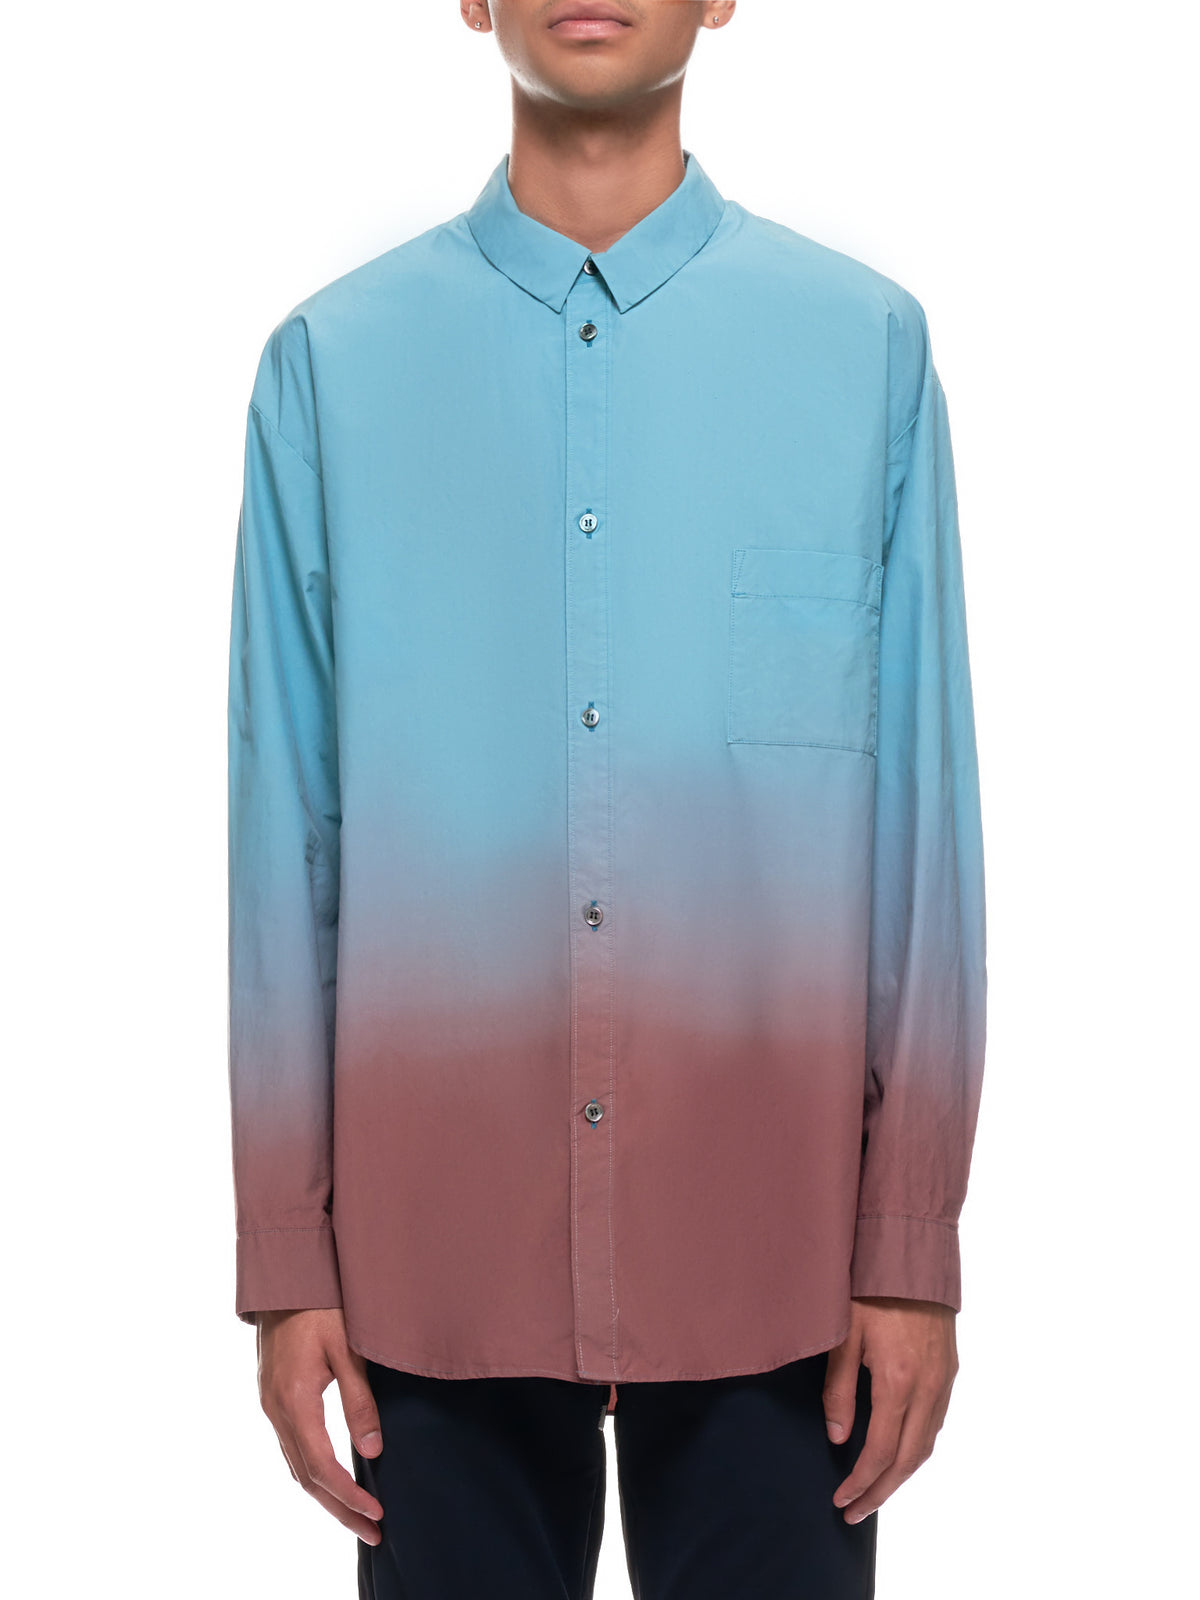 Gradient Shirt (KS03-031-TEAL-BROWN